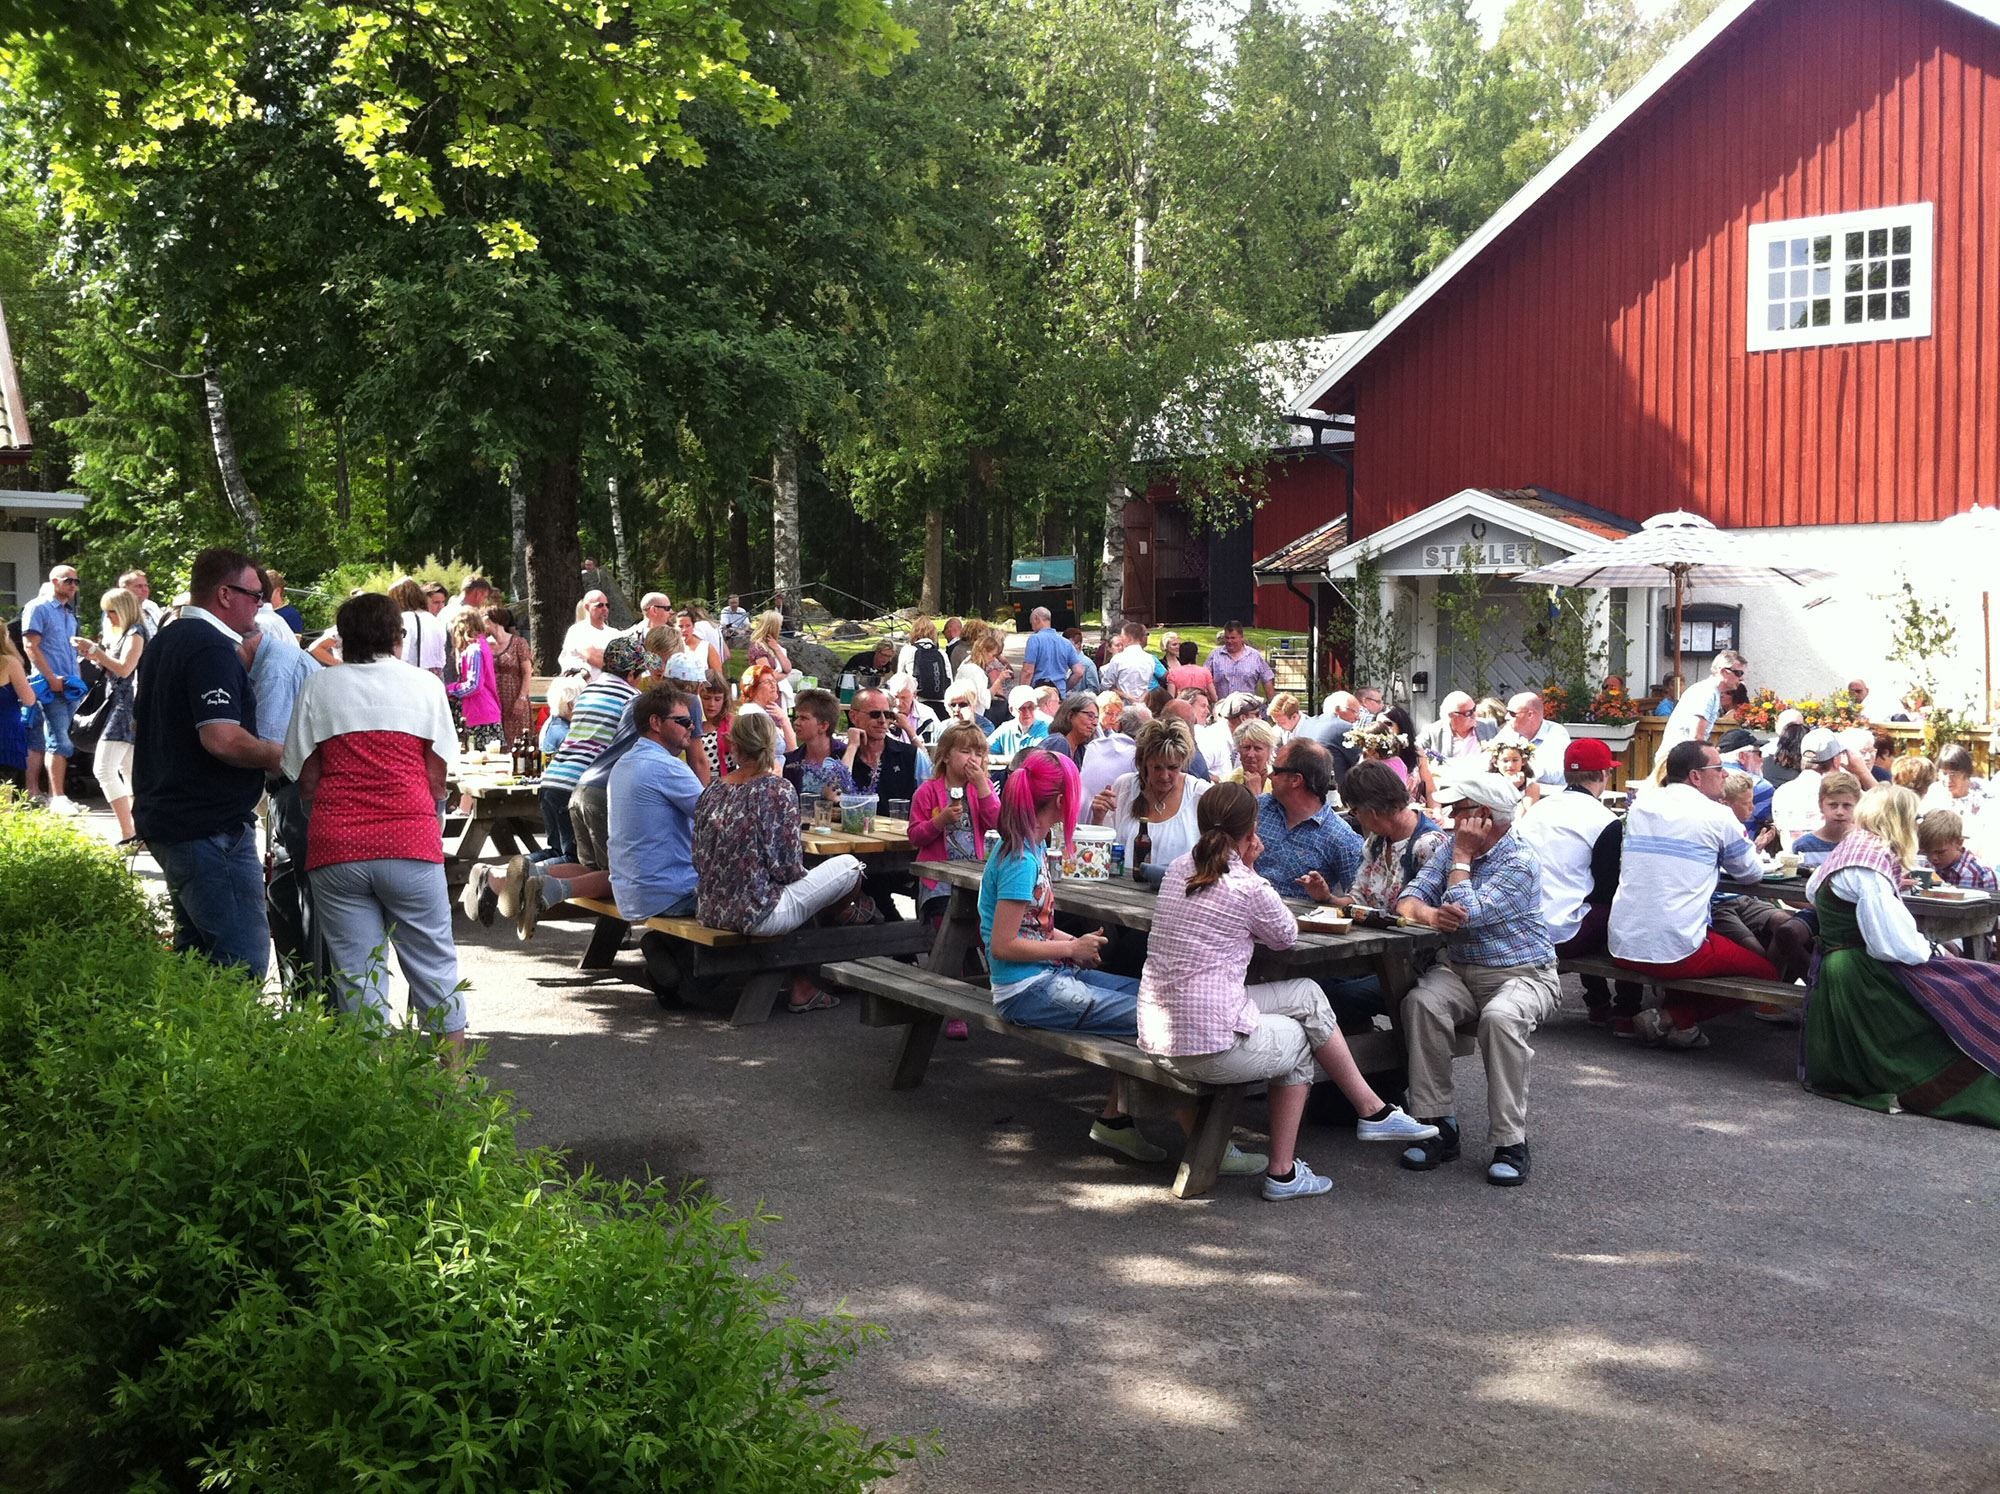 Celebrate the Swedish national day at Lunedets Camping - stay 3 nights pay for 2!